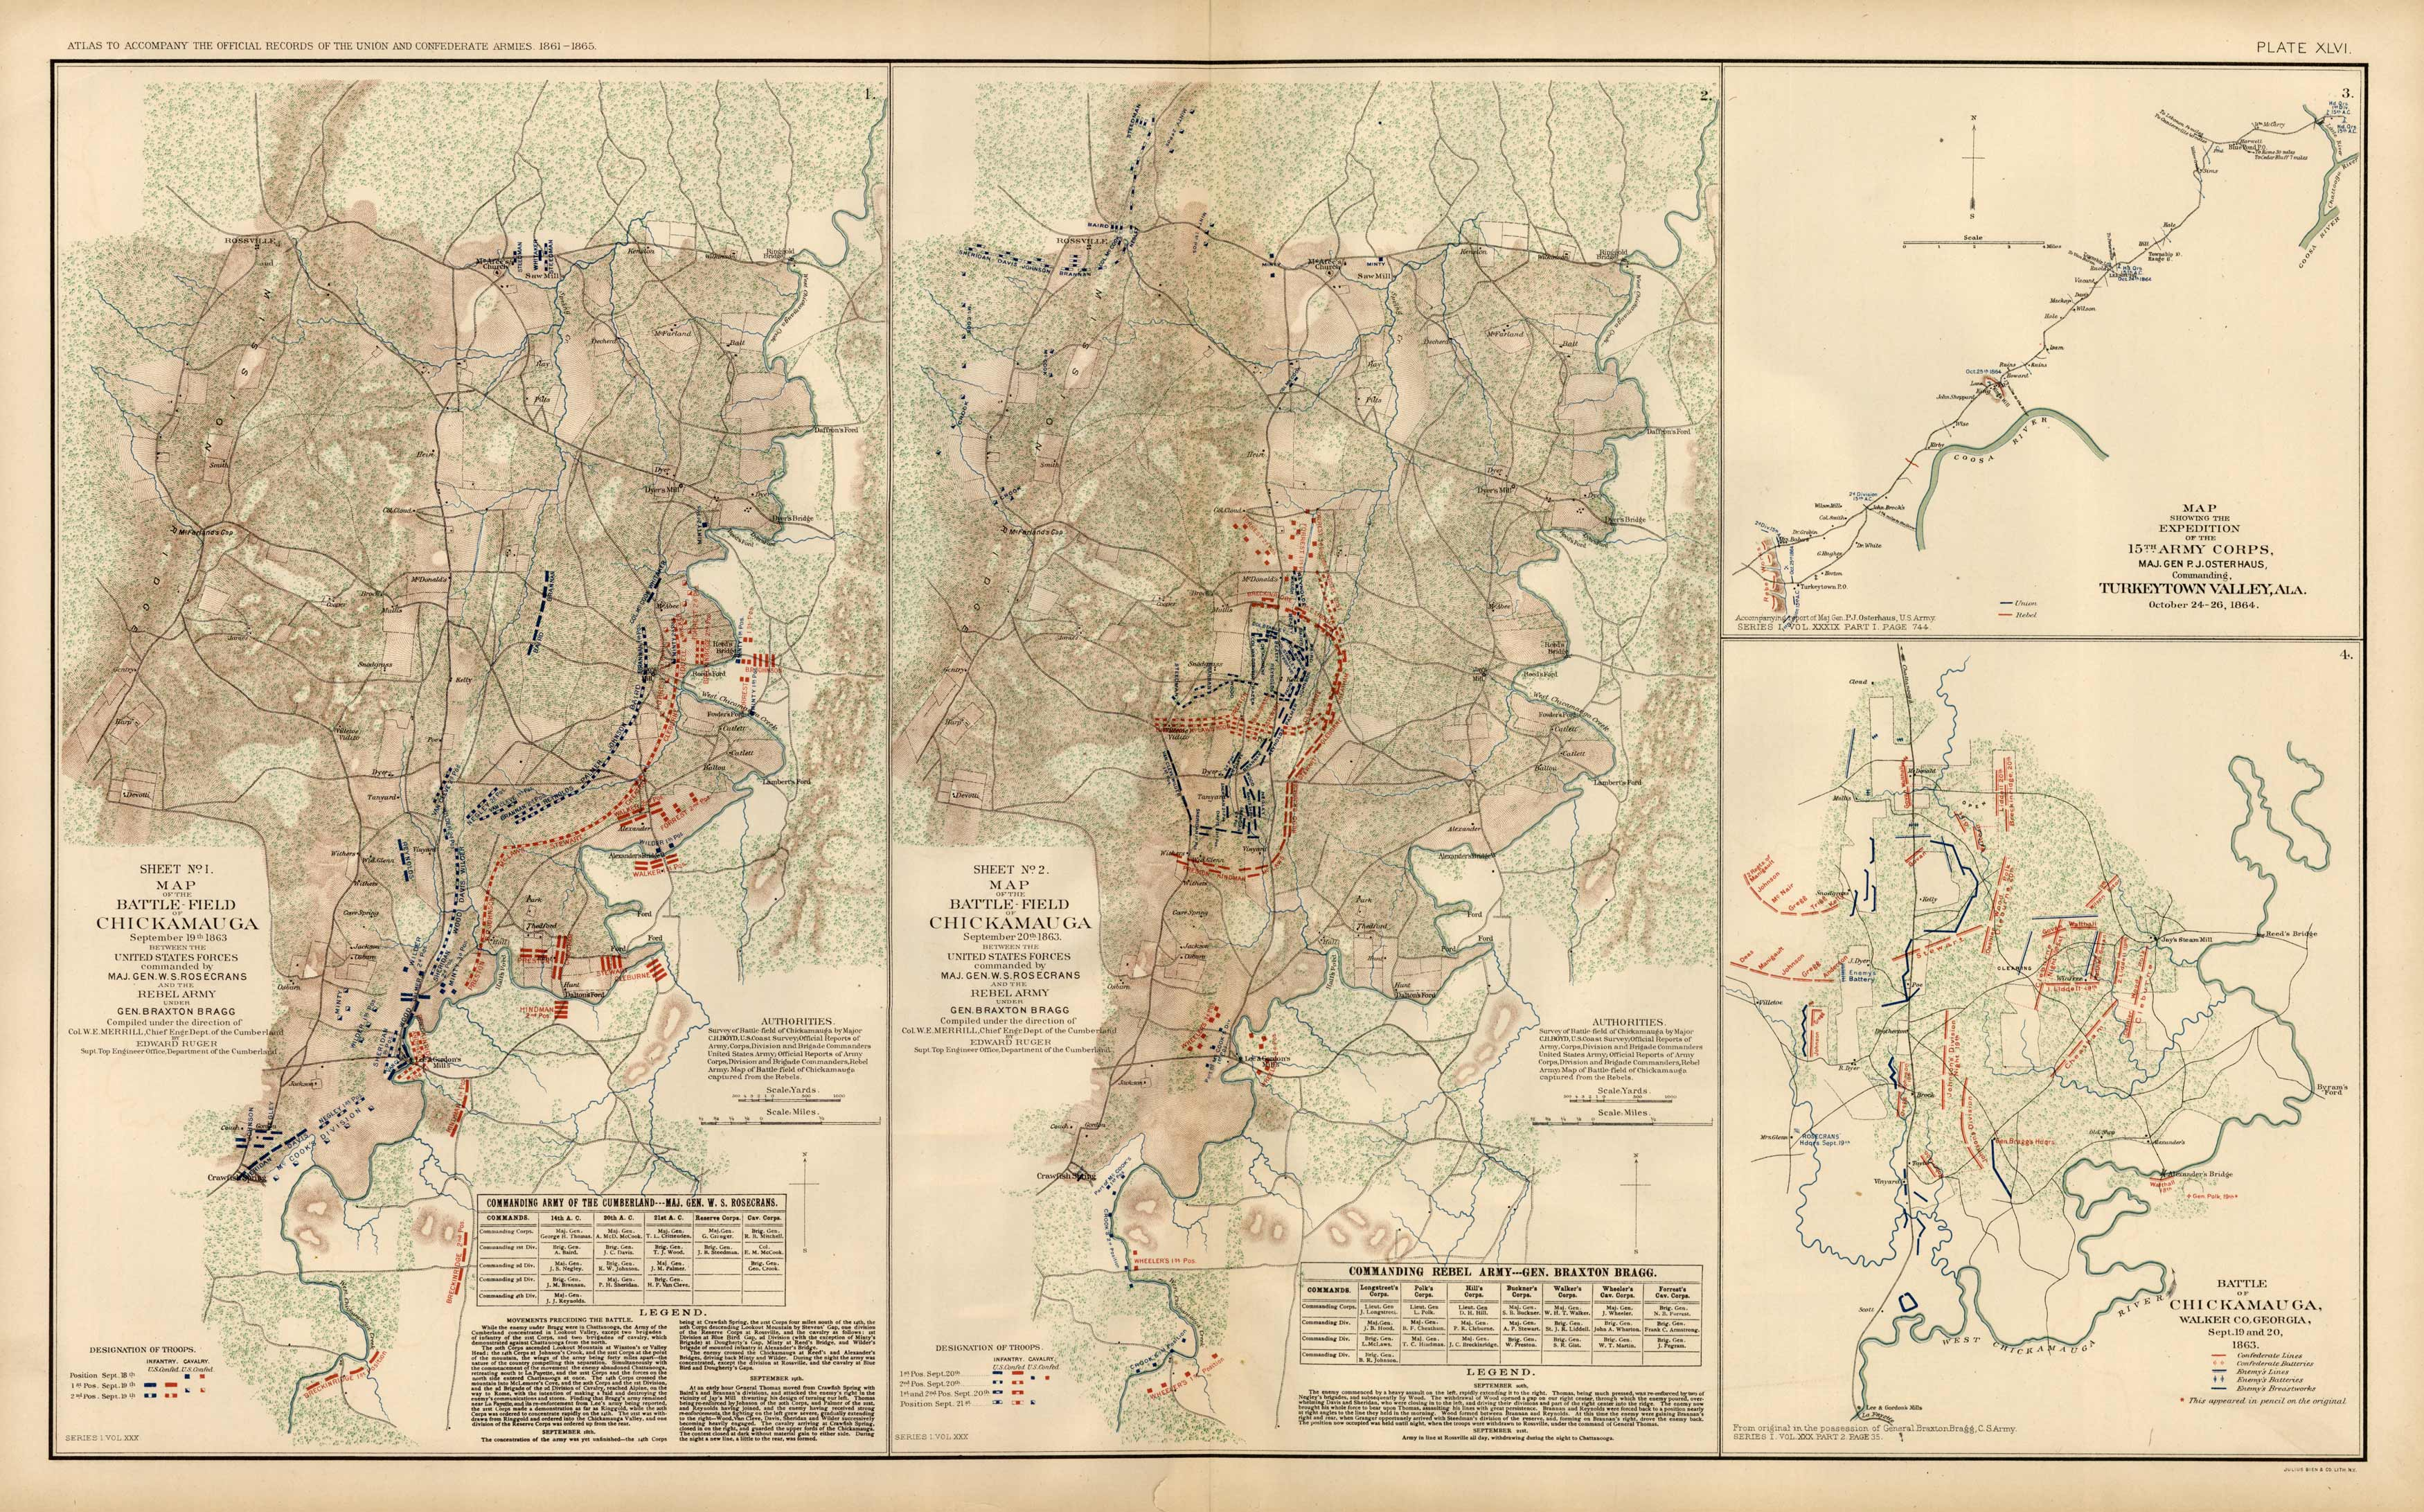 Civil War Atlas; 1892; Plate 46; Map of Battle of Chickamauga; Turkeytown Valley